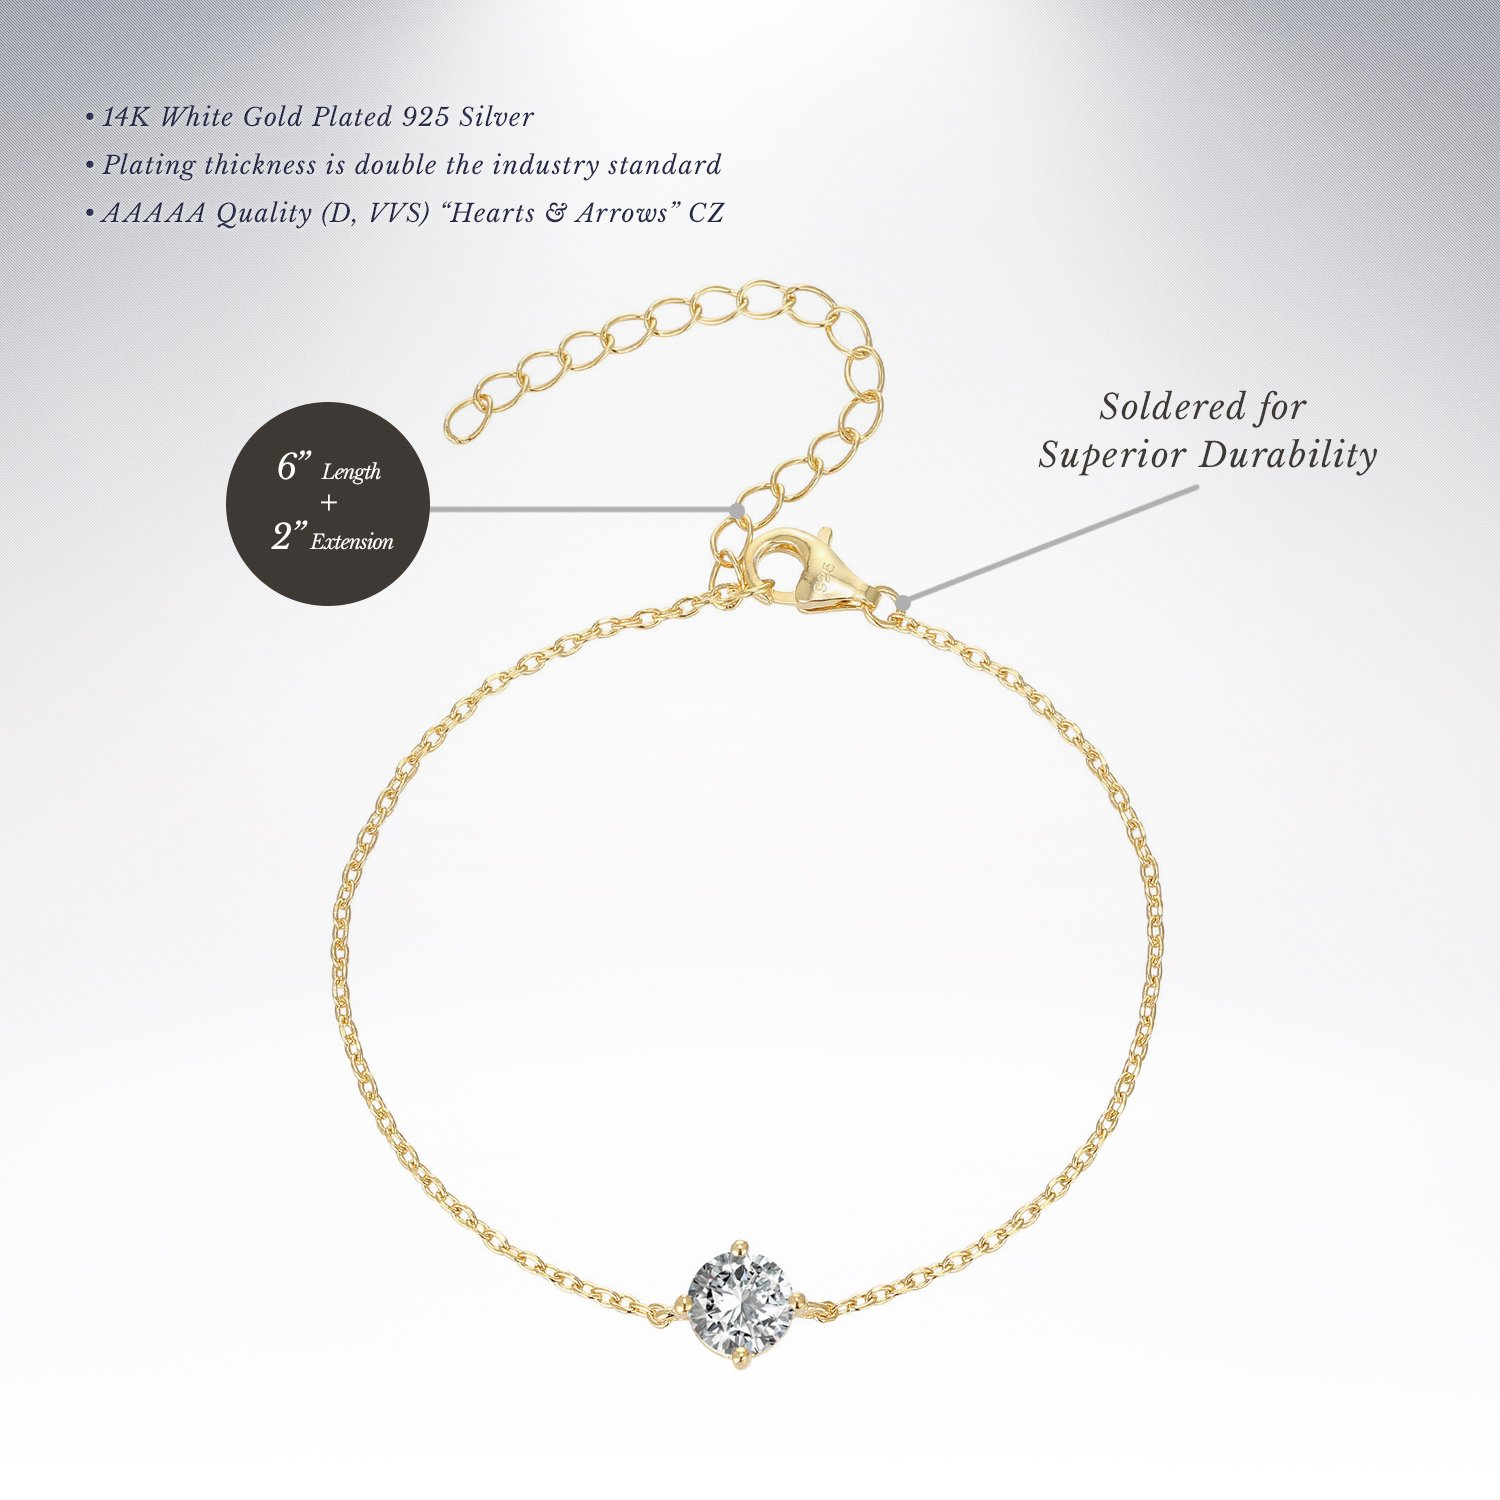 PAVOI 14K Gold Plated Simulated Solitaire Diamond Bracelet - Yellow by PAVOI (Image #2)